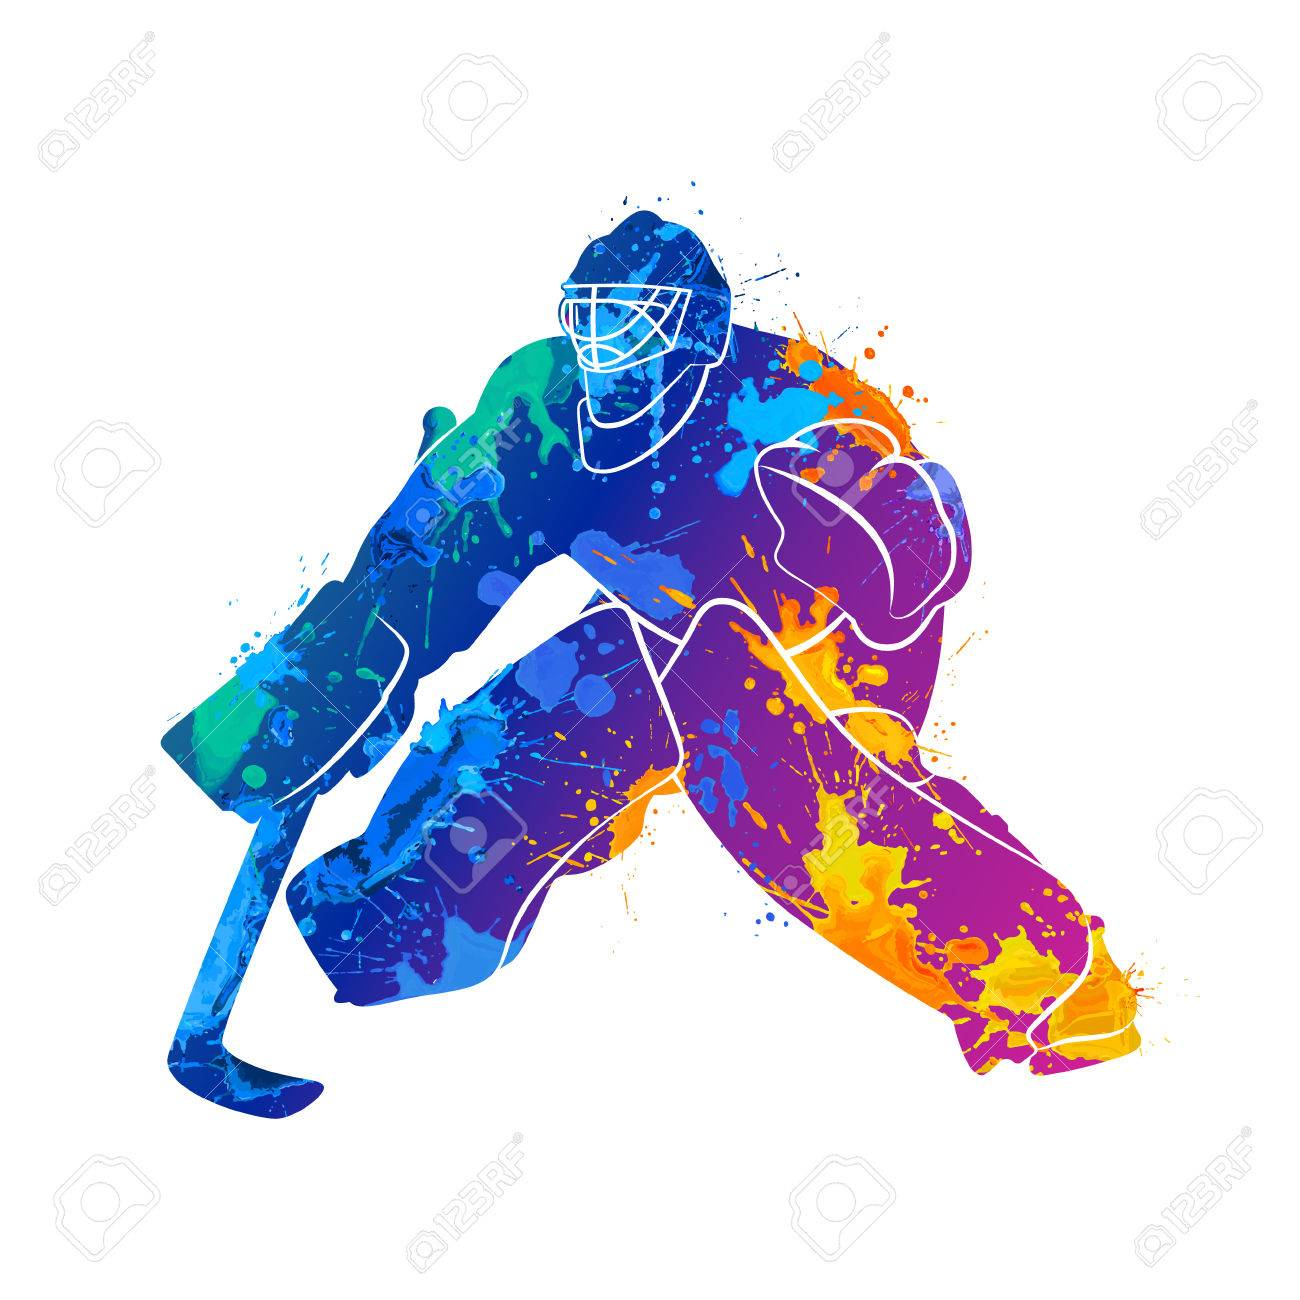 Player Hockey Goalie Royalty Free Cliparts Vectors And Stock